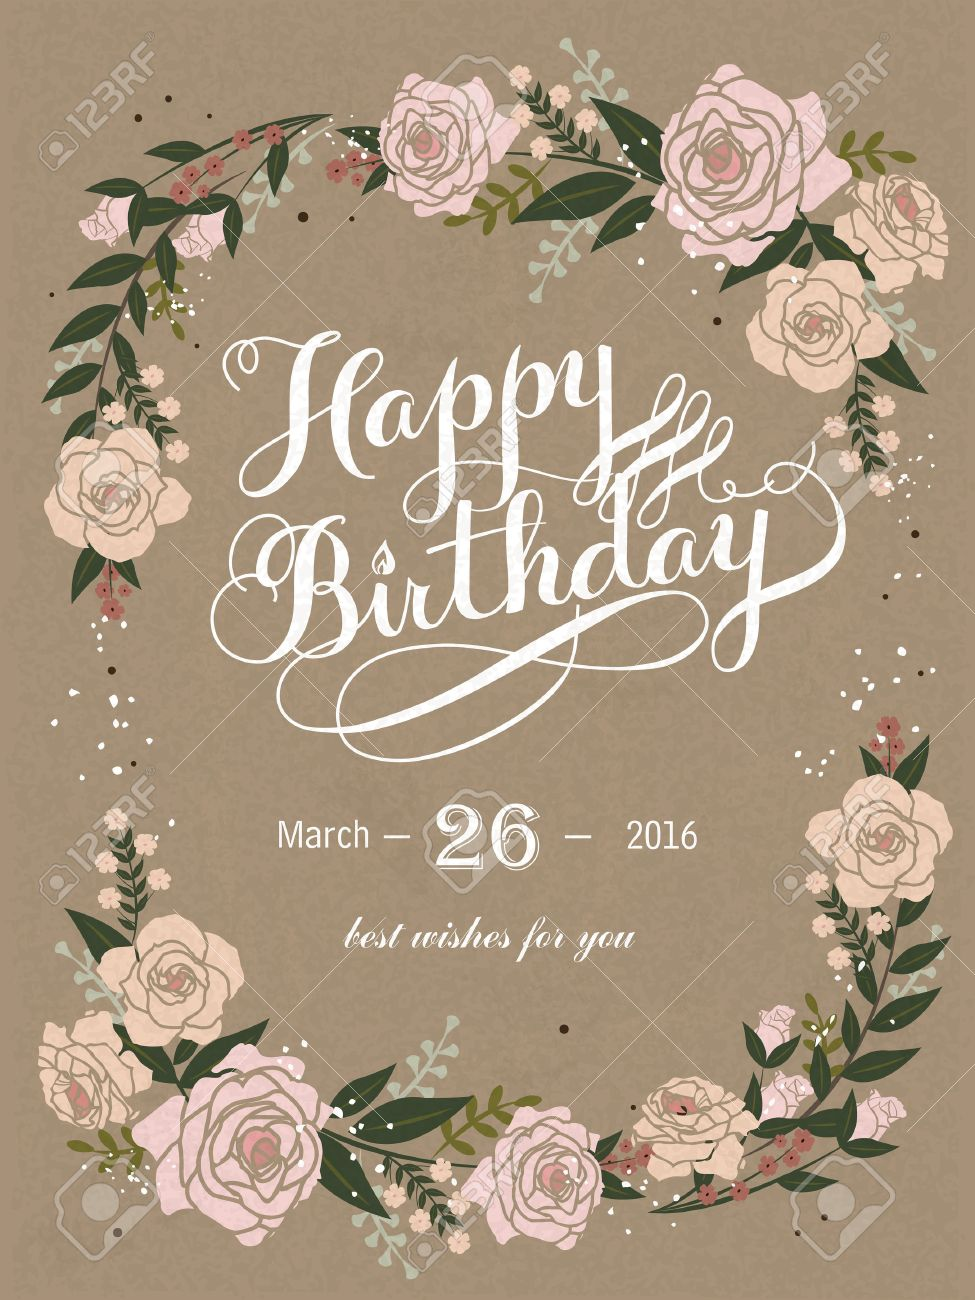 B day poster designs - Romantic Happy Birthday Calligraphy And Poster Design With Floral Elements Stock Vector 51191773